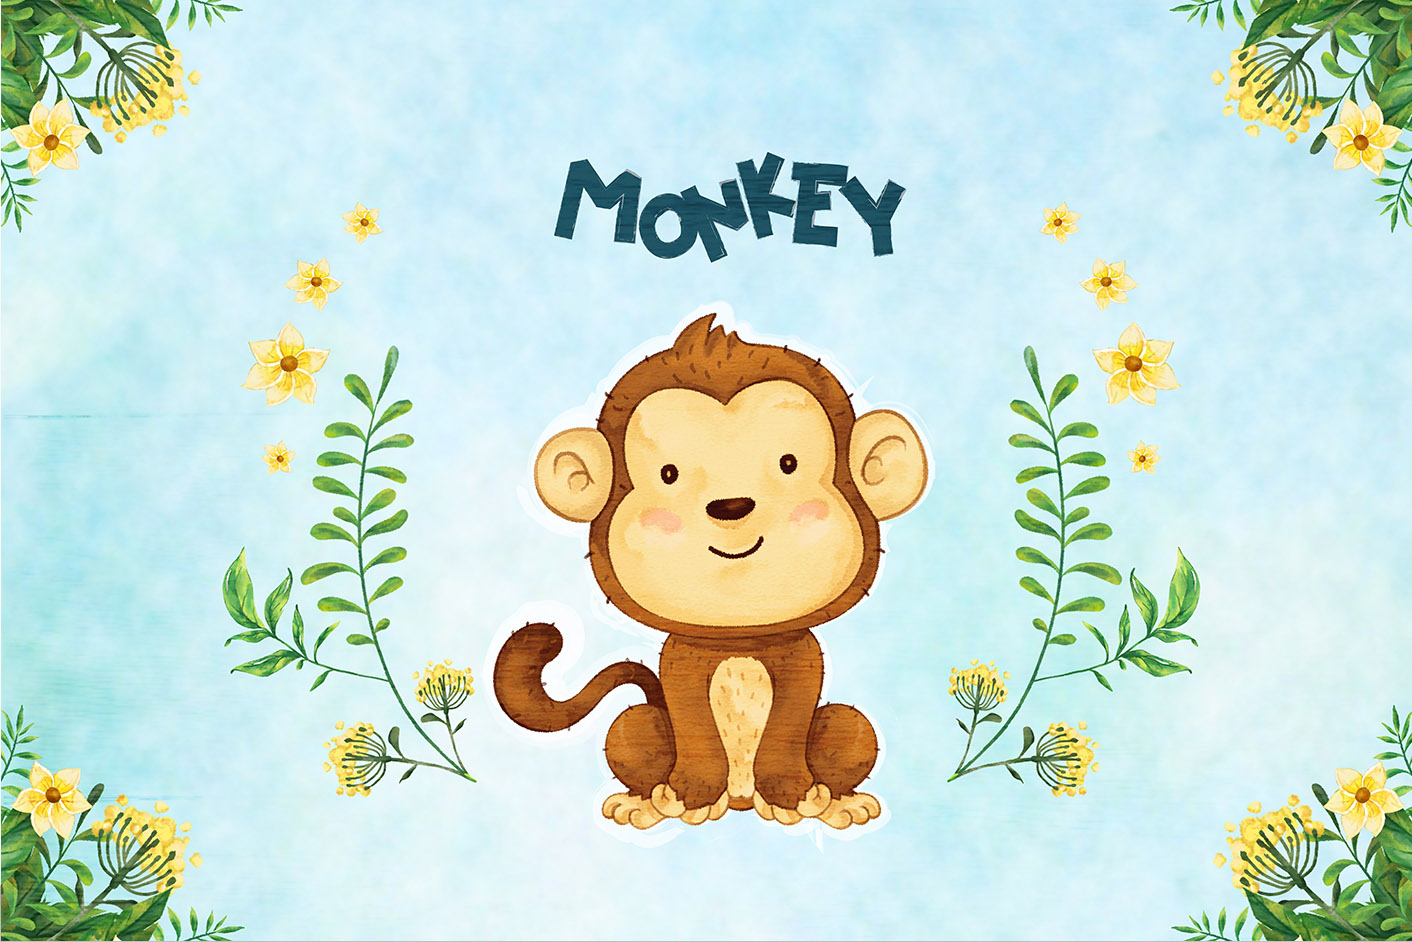 Download Free Monkey Nursery Decor Graphic By Accaliadigital Creative Fabrica for Cricut Explore, Silhouette and other cutting machines.